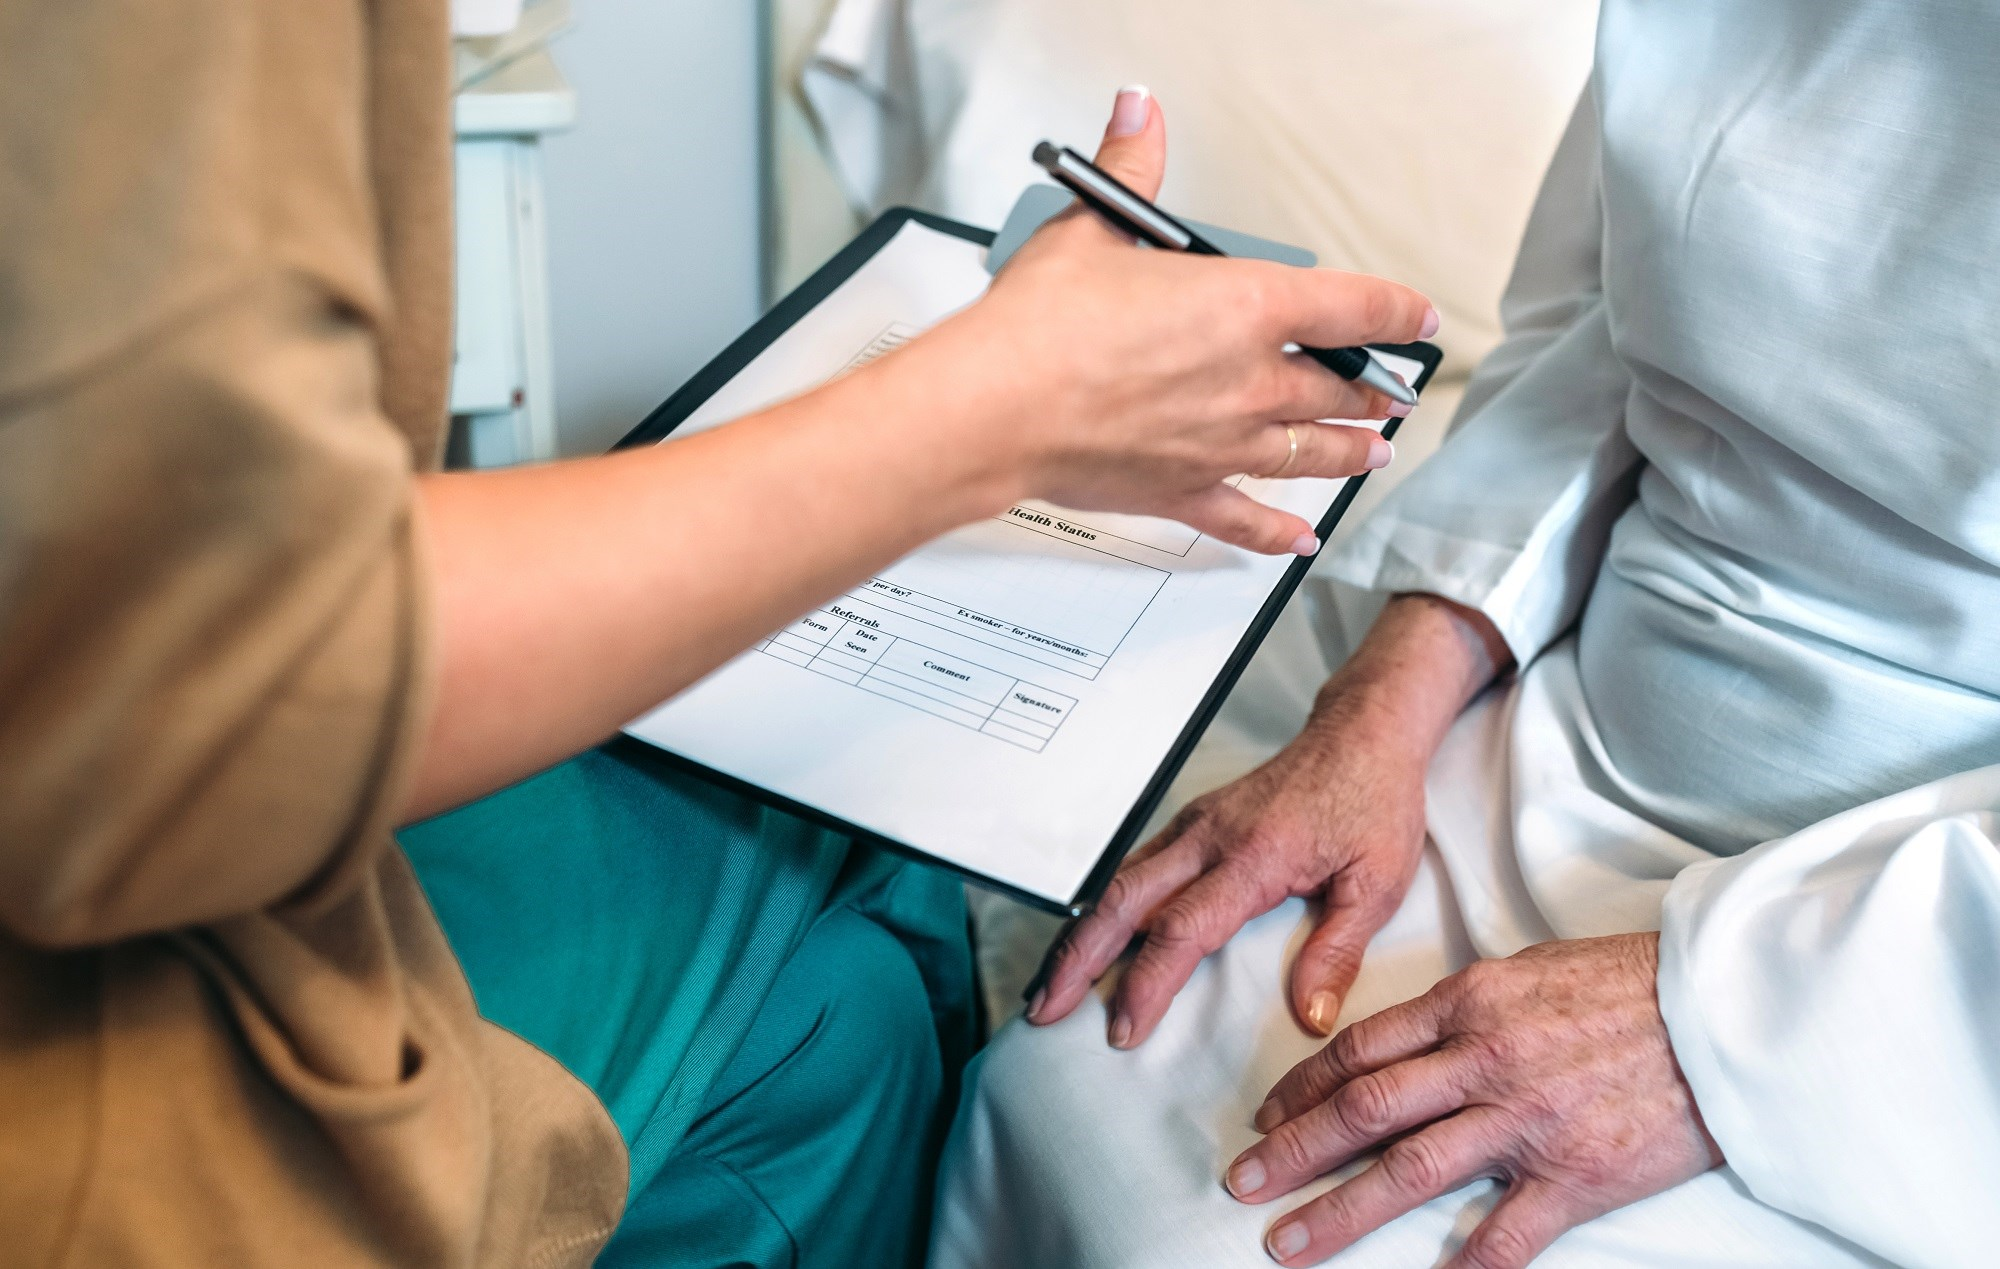 The novel questionnaire may identify patients with ALS suffering from dyspnea and allow early assessment and monitoring for symptom management.